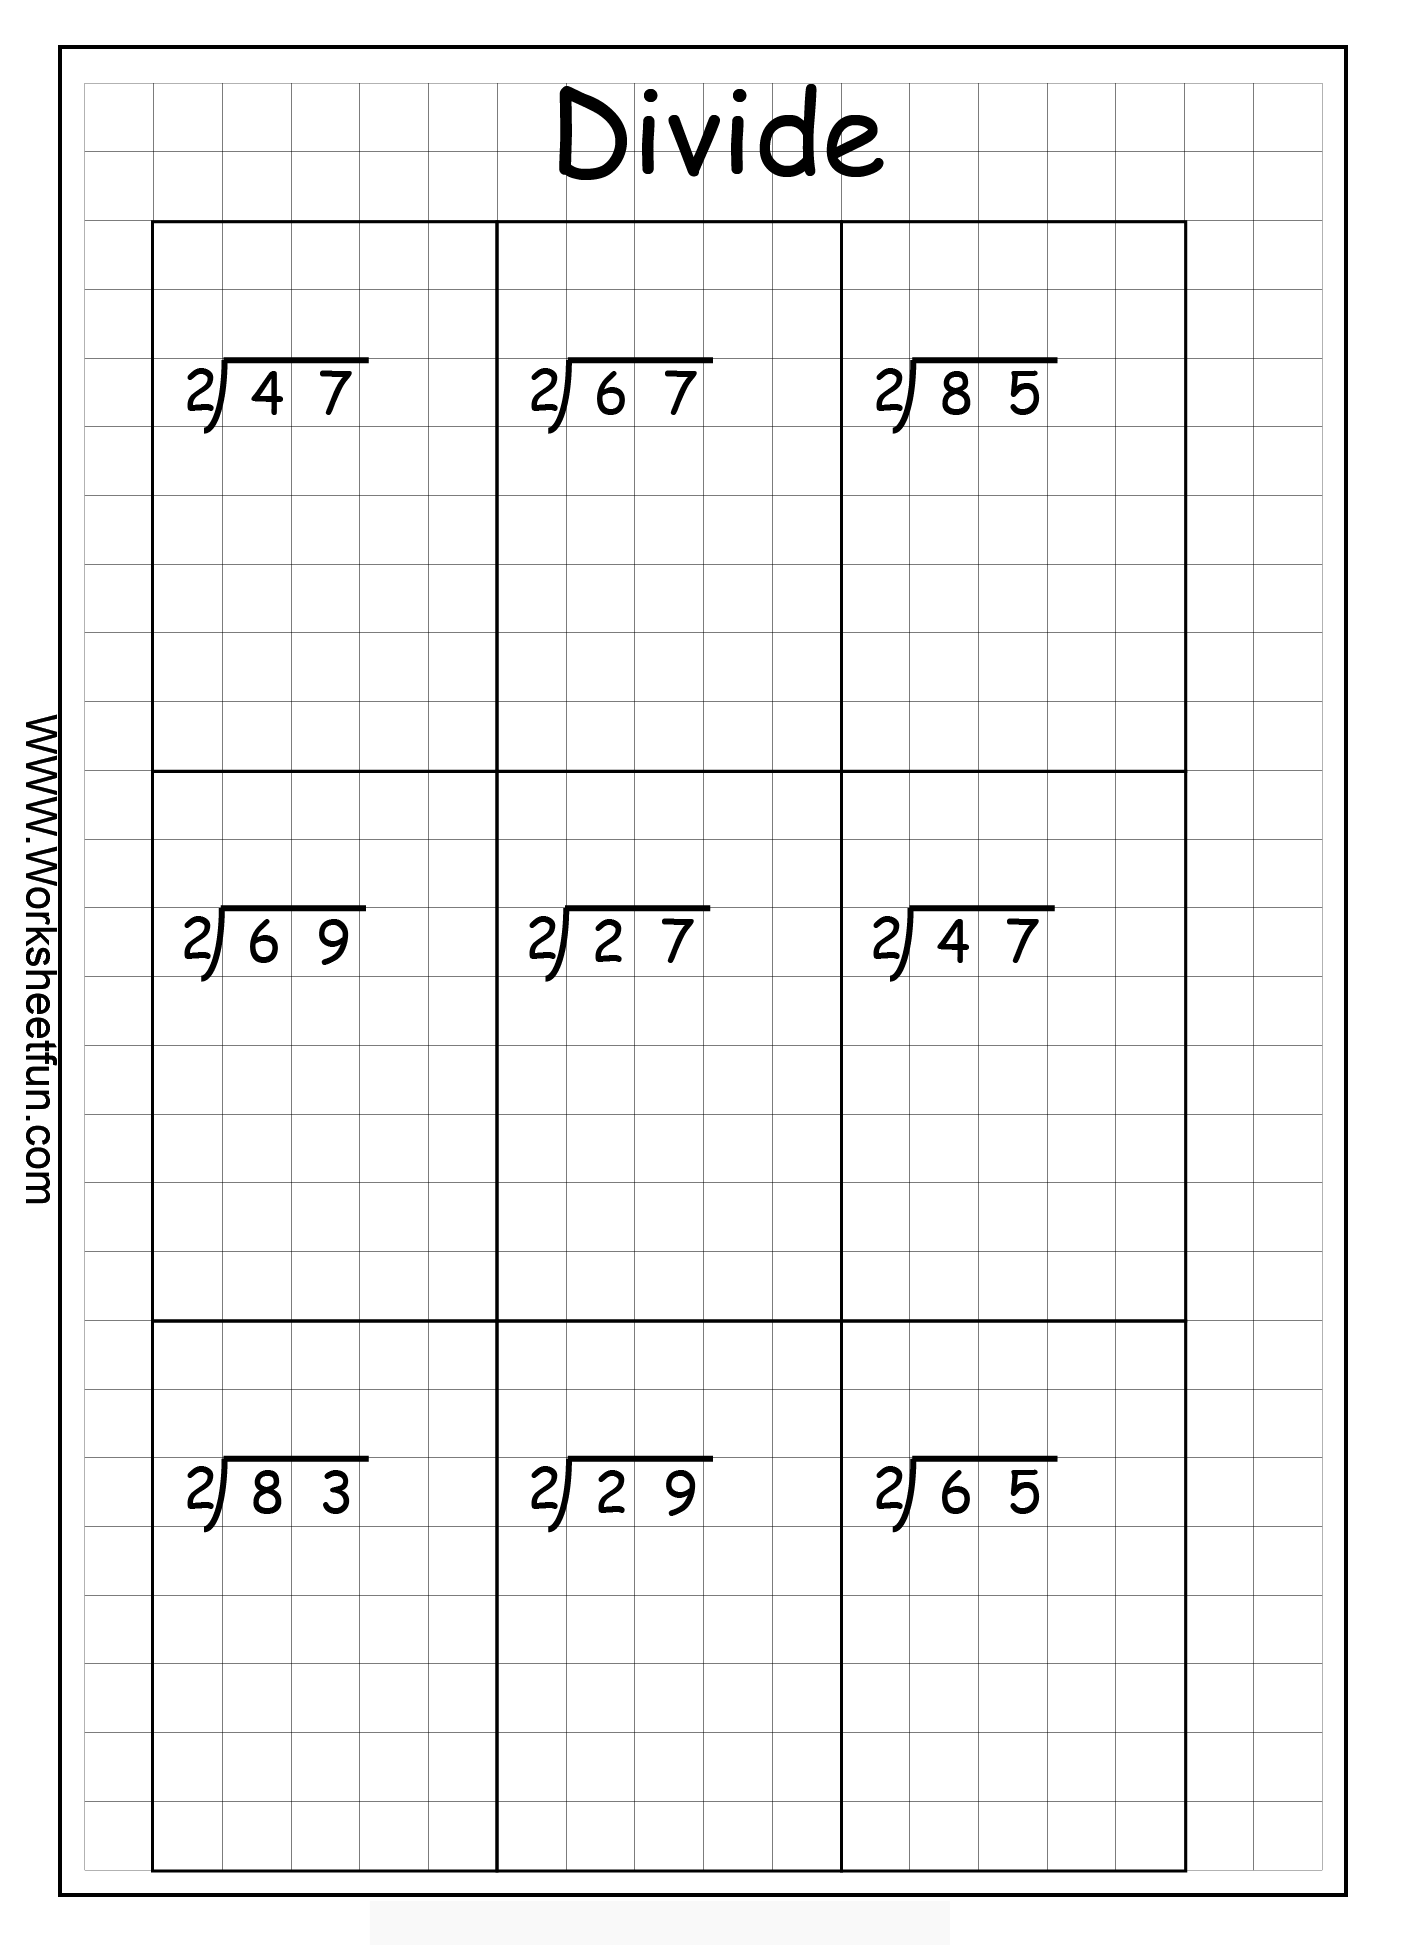 Long Division 2 Digits By 1 Digit With Remainder 8 – Partial Quotient Division Worksheets